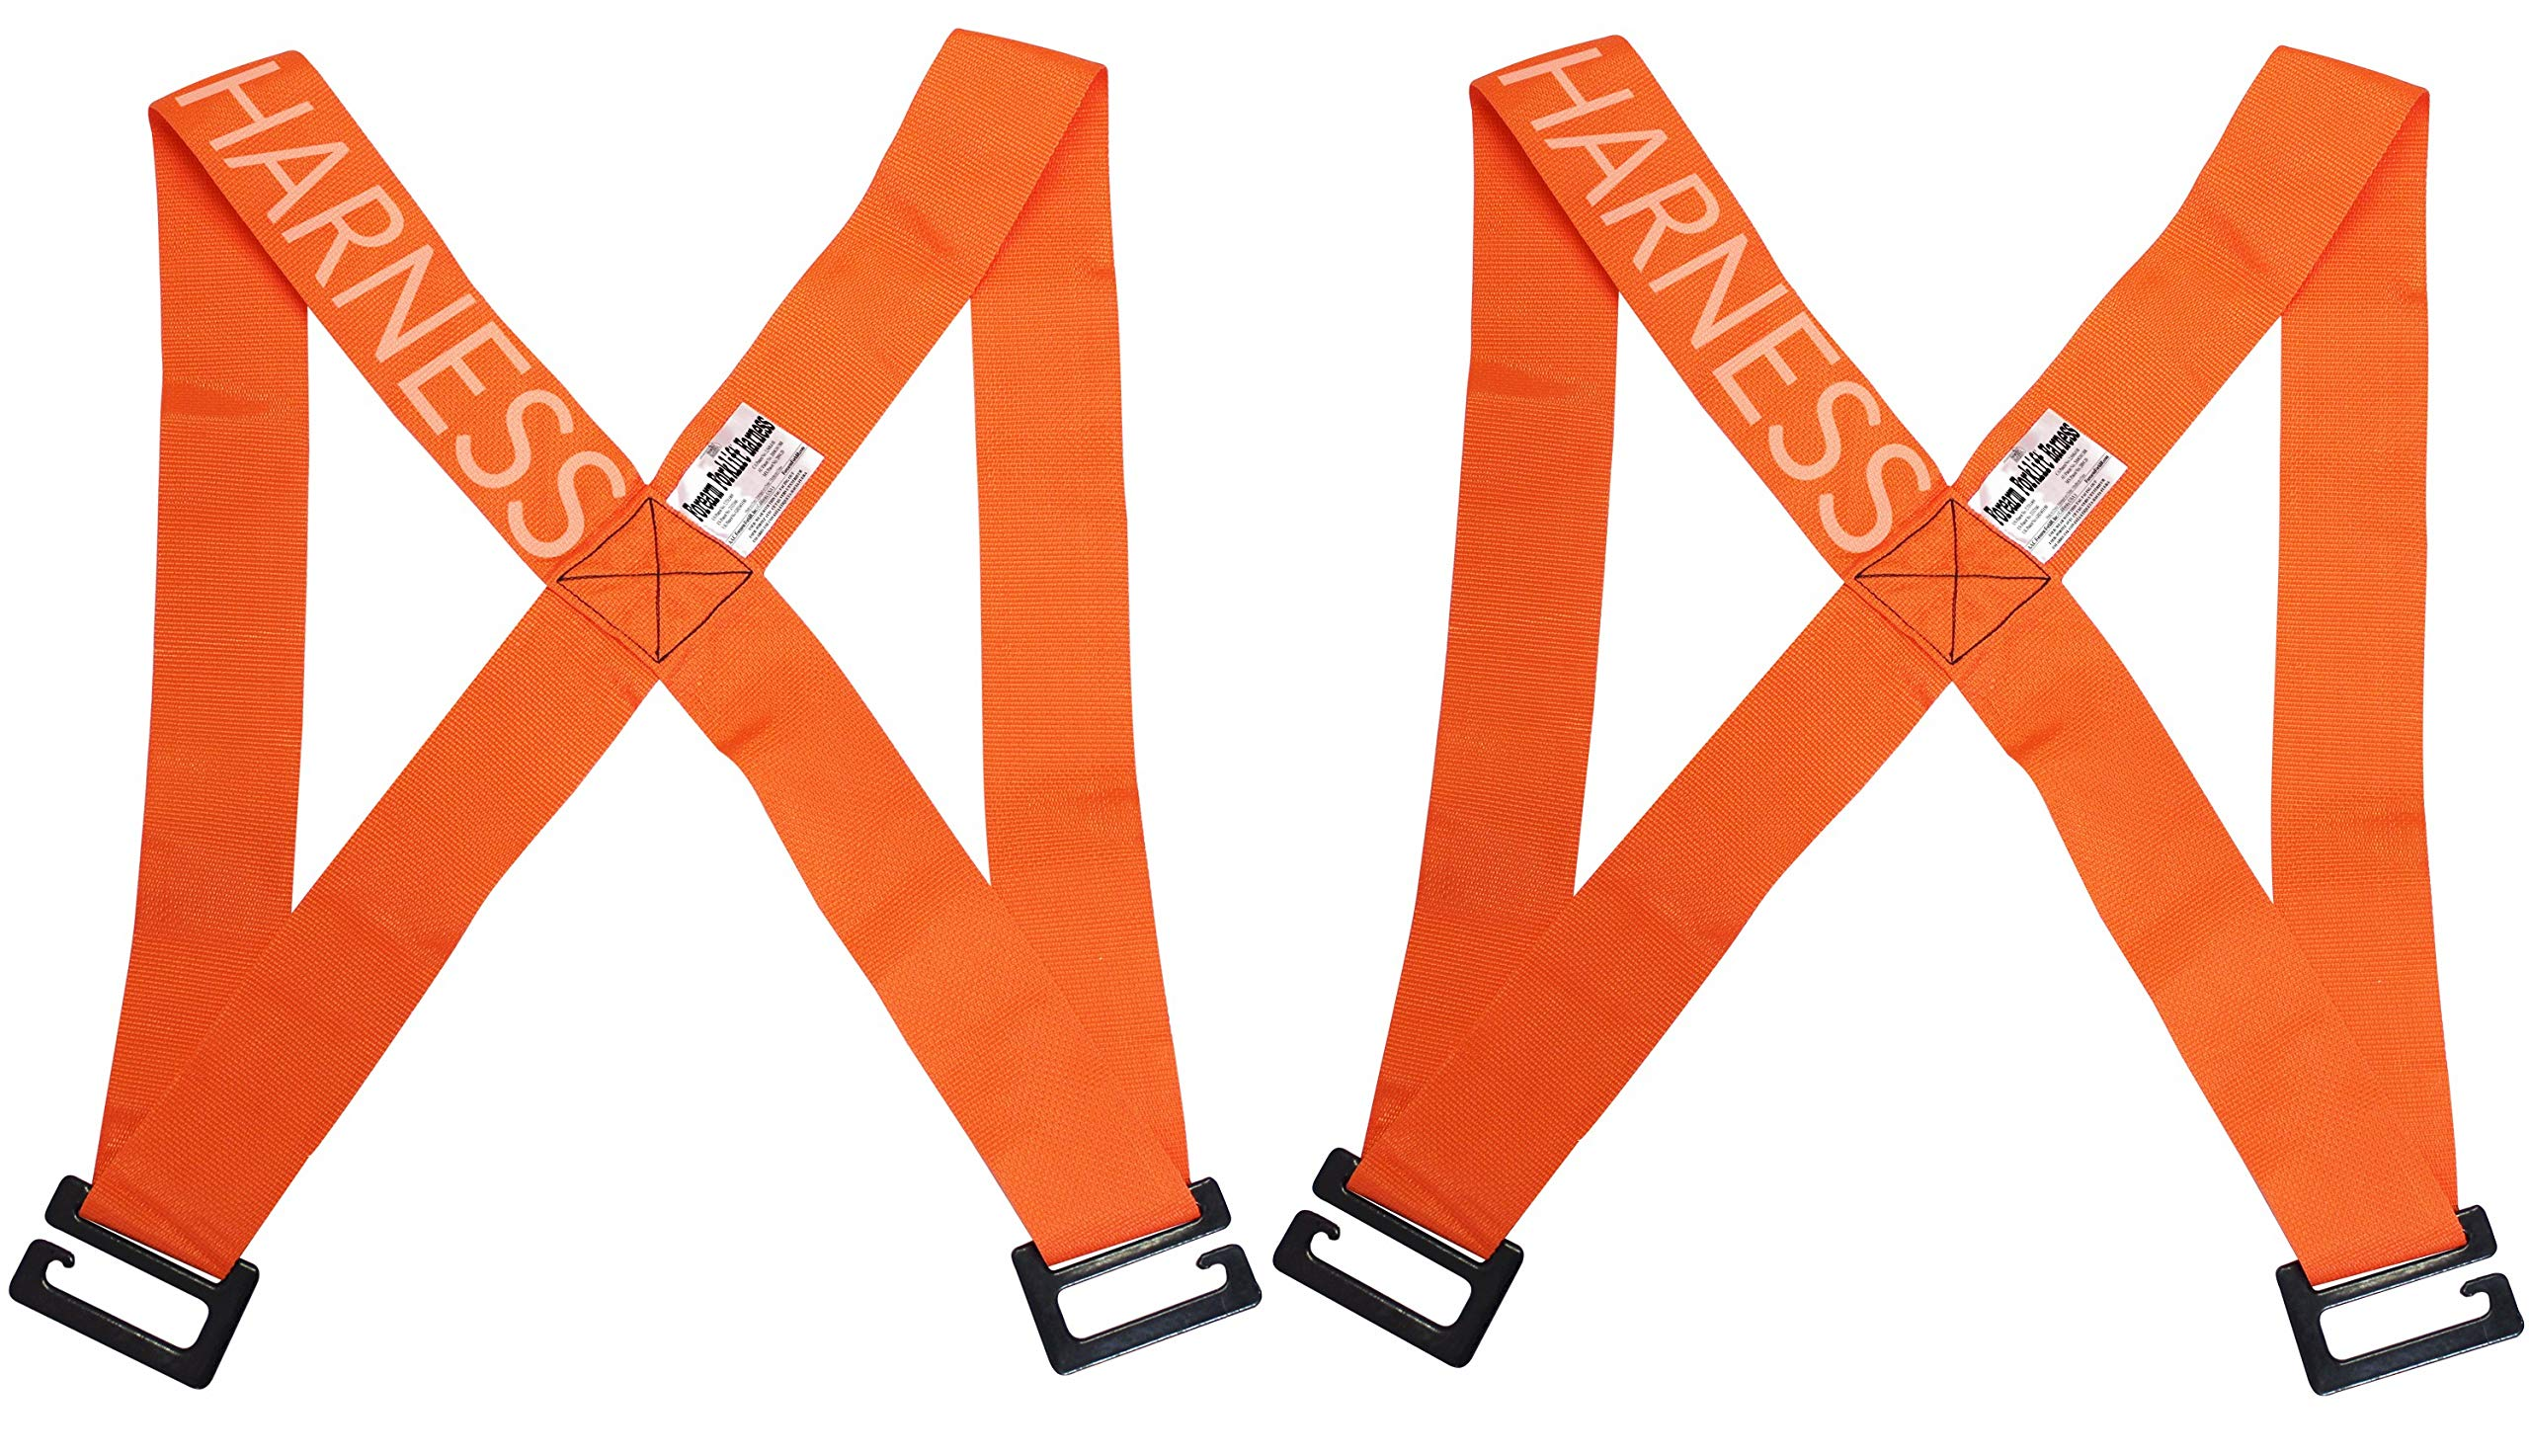 Forearm Forklift FFH2 Harness 2 | Requires Lifting & Moving Straps (Sold Separately) | 2 Person System | Lift Like A PRO and Move Heavy Appliances | Rated Up to 800 Lbs, Orange